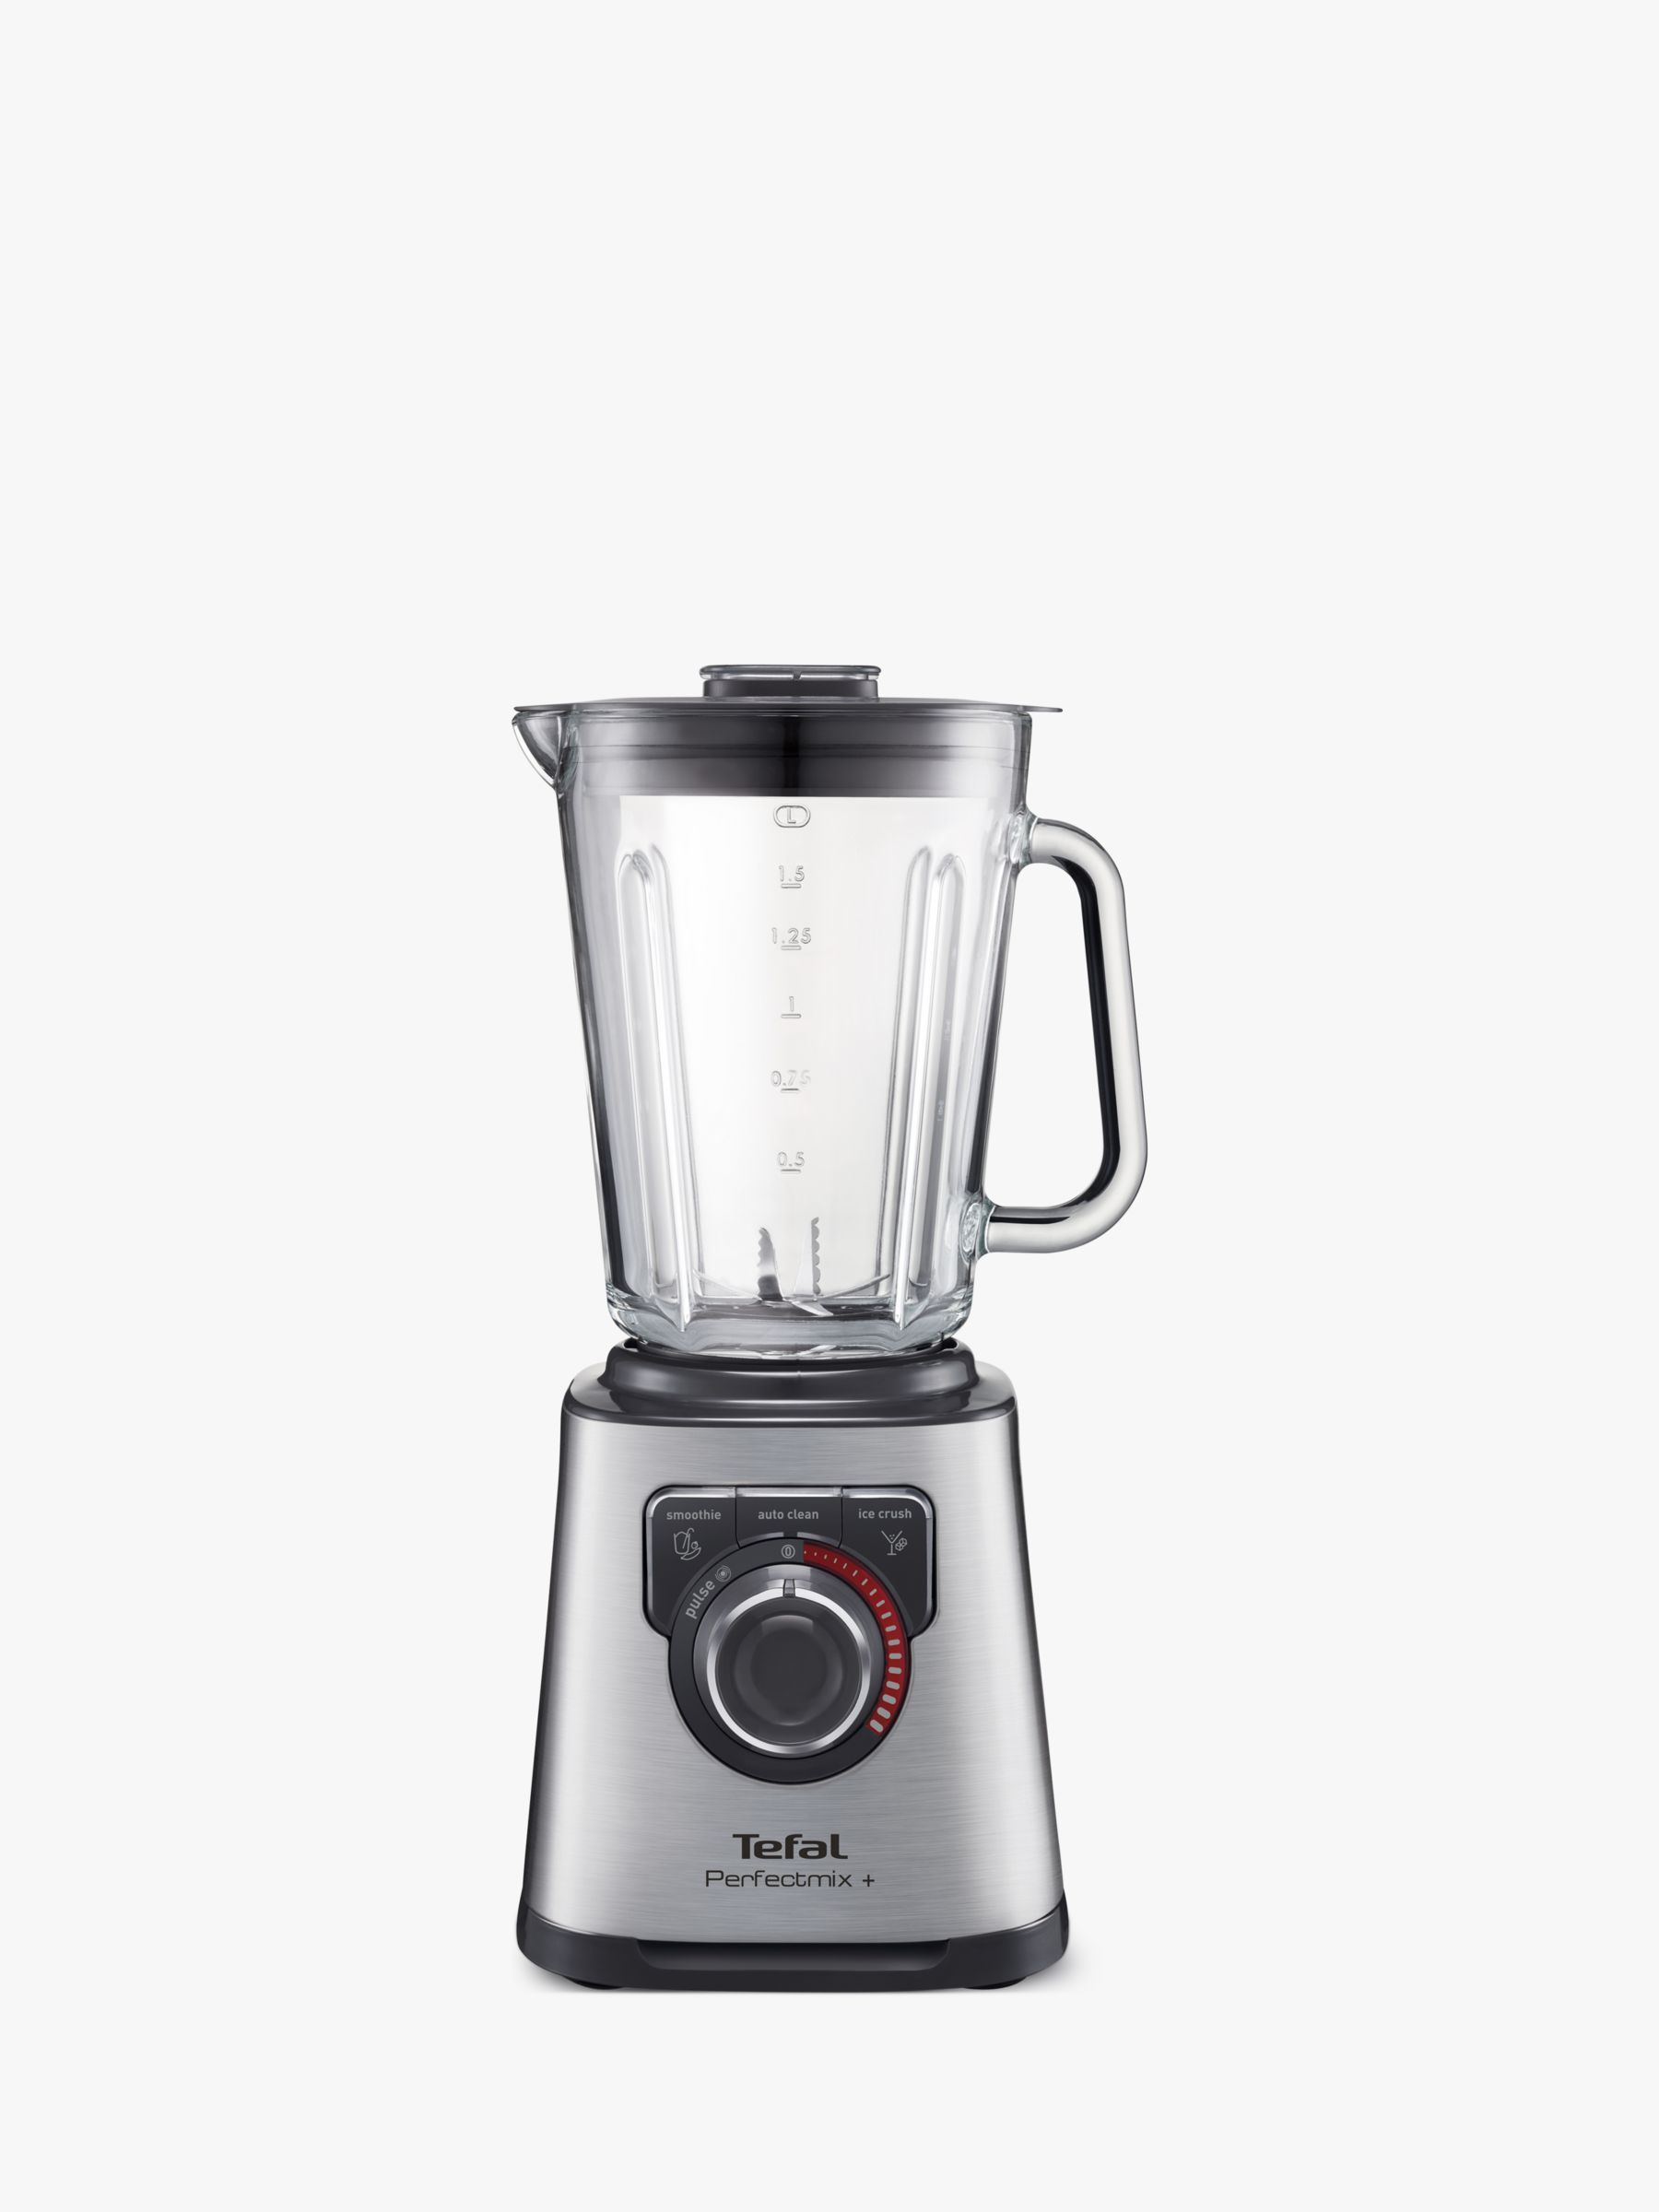 Tefal Tefal Perfect Mix+ Blender, Stainless Steel